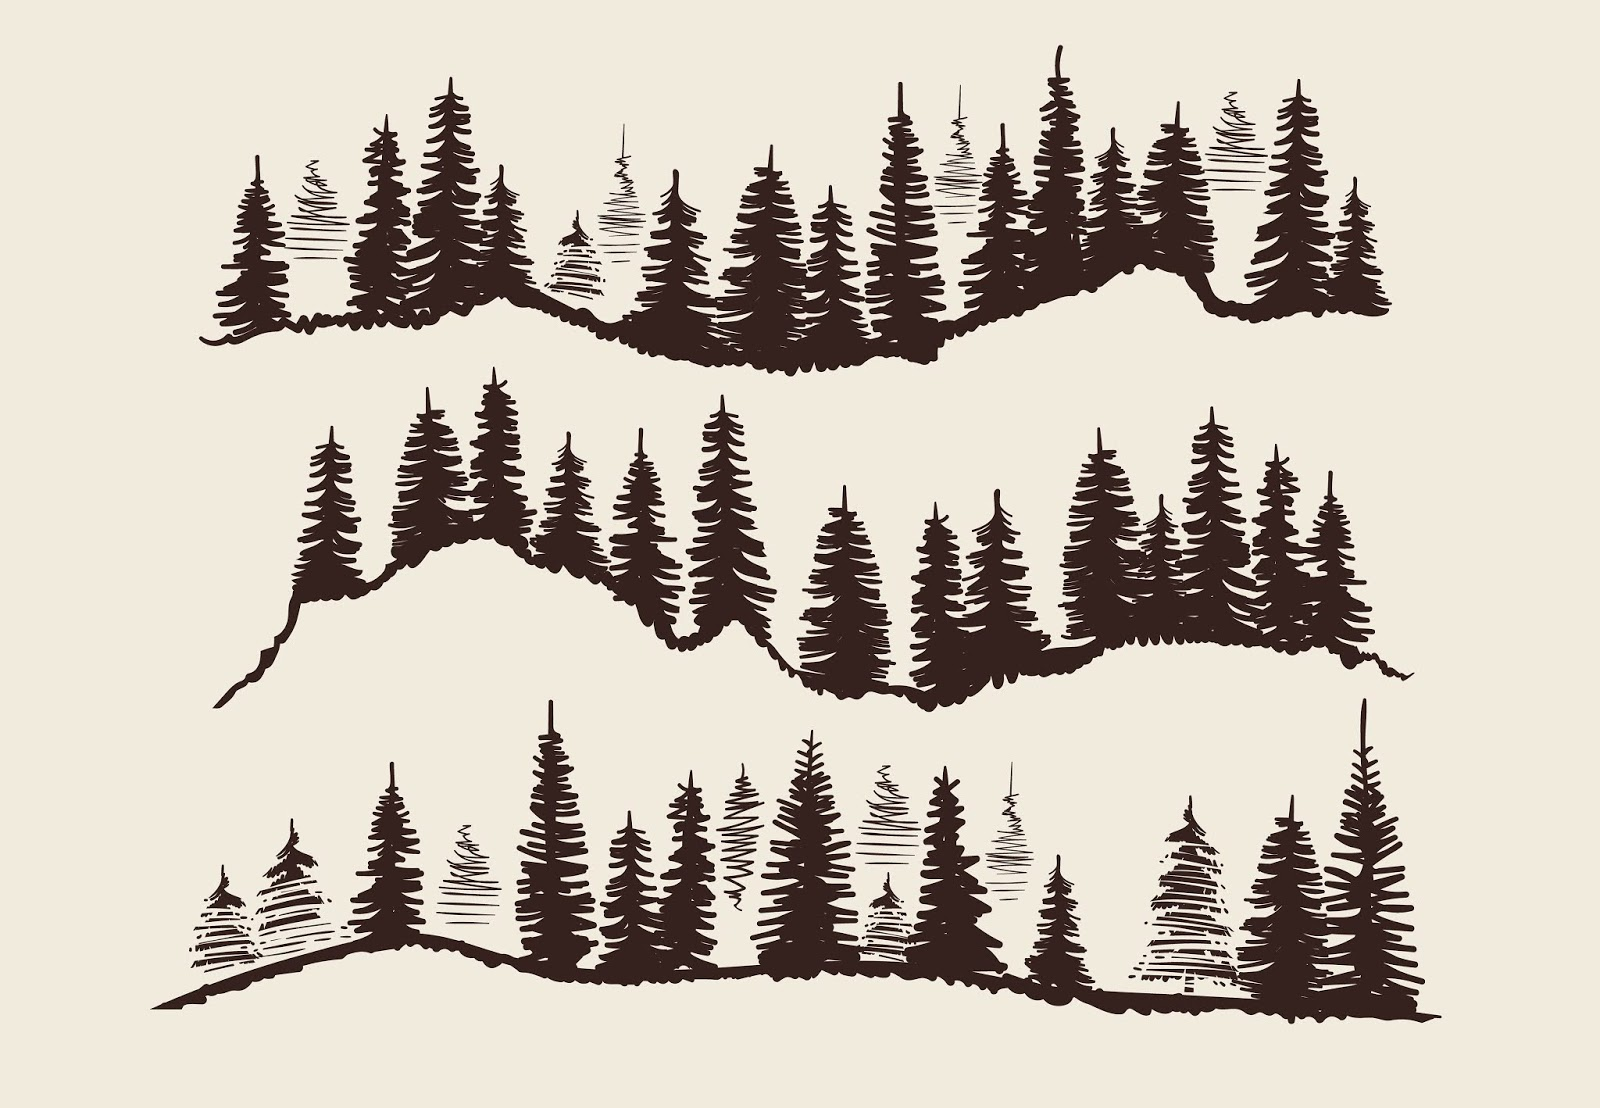 Vintage Engraving Forest Doodle Sketch Free Download Vector CDR, AI, EPS and PNG Formats